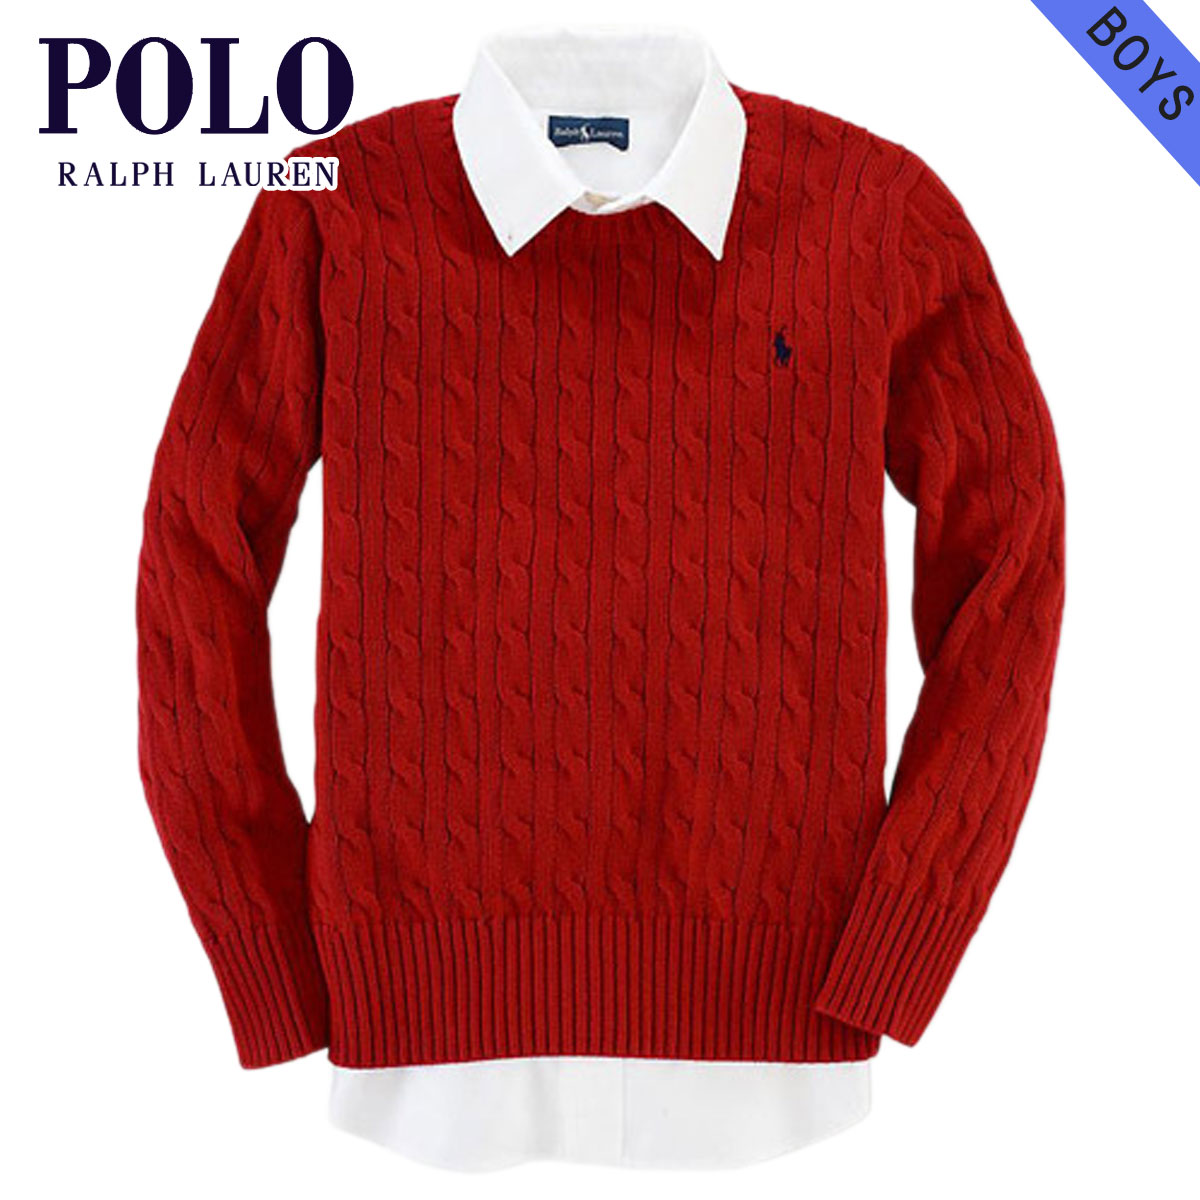 203fb6467 Poloralflorenkids POLO RALPH LAUREN CHILDREN genuine kids clothing boys  sweater Classic Cable Crewneck #13004938 RED 10P22Jul14